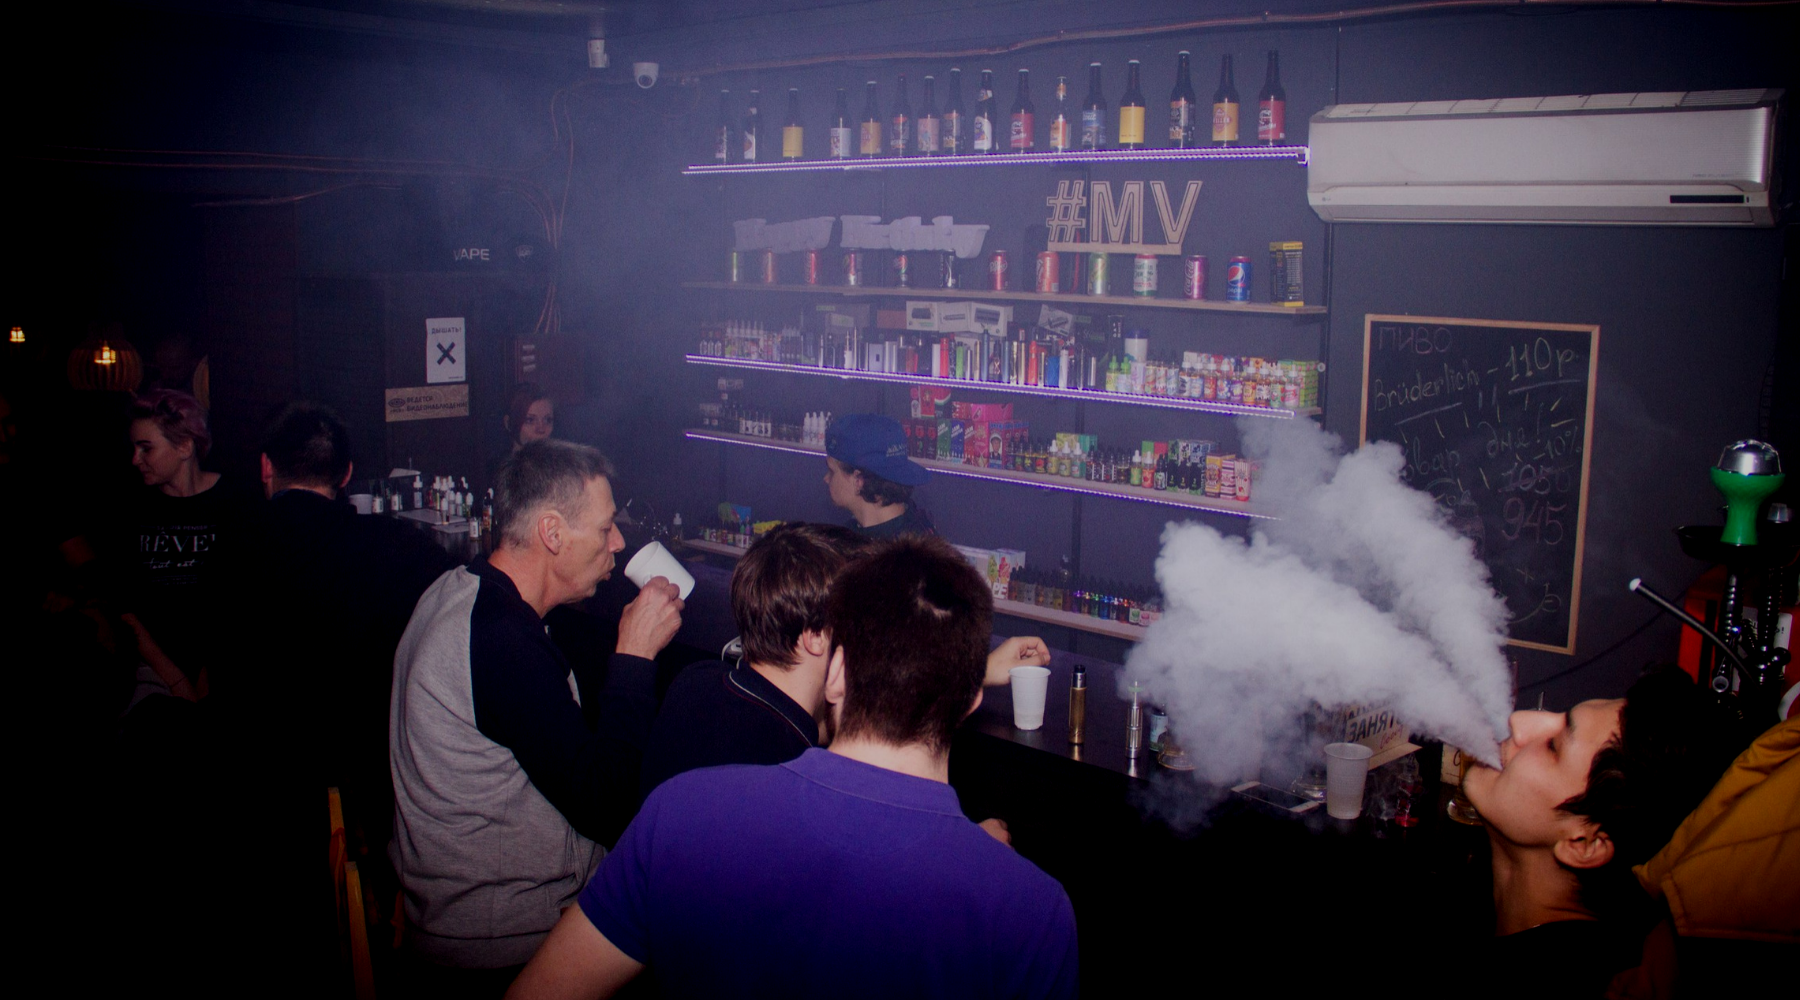 Vape Shop in Newcastle-upon-Tyne, UK